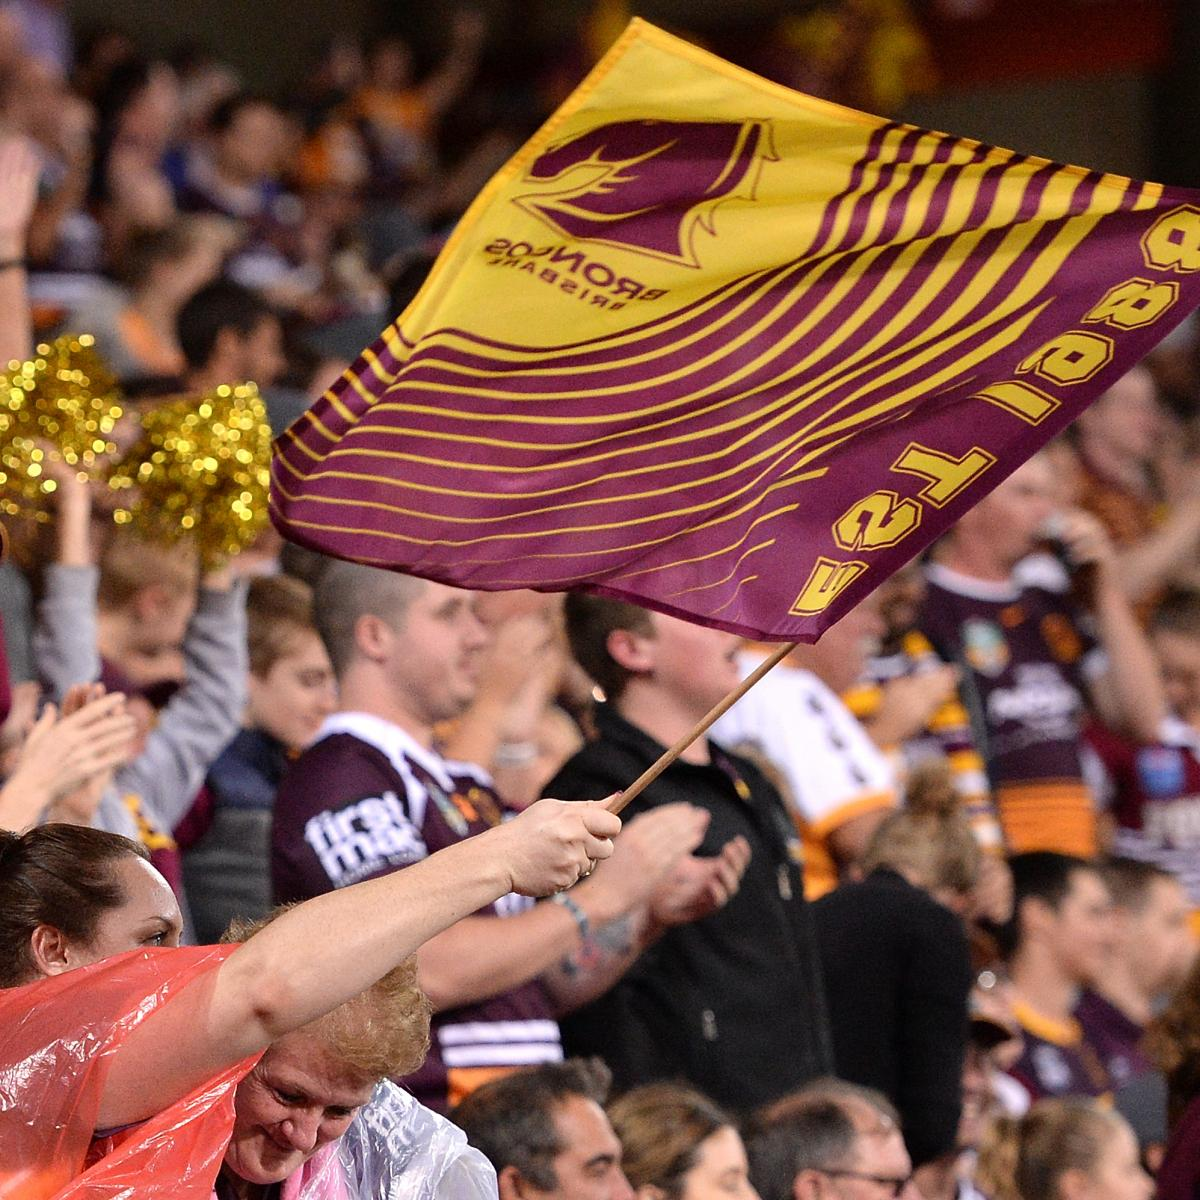 Nrl round 7 betting odds bet on soldier pc review